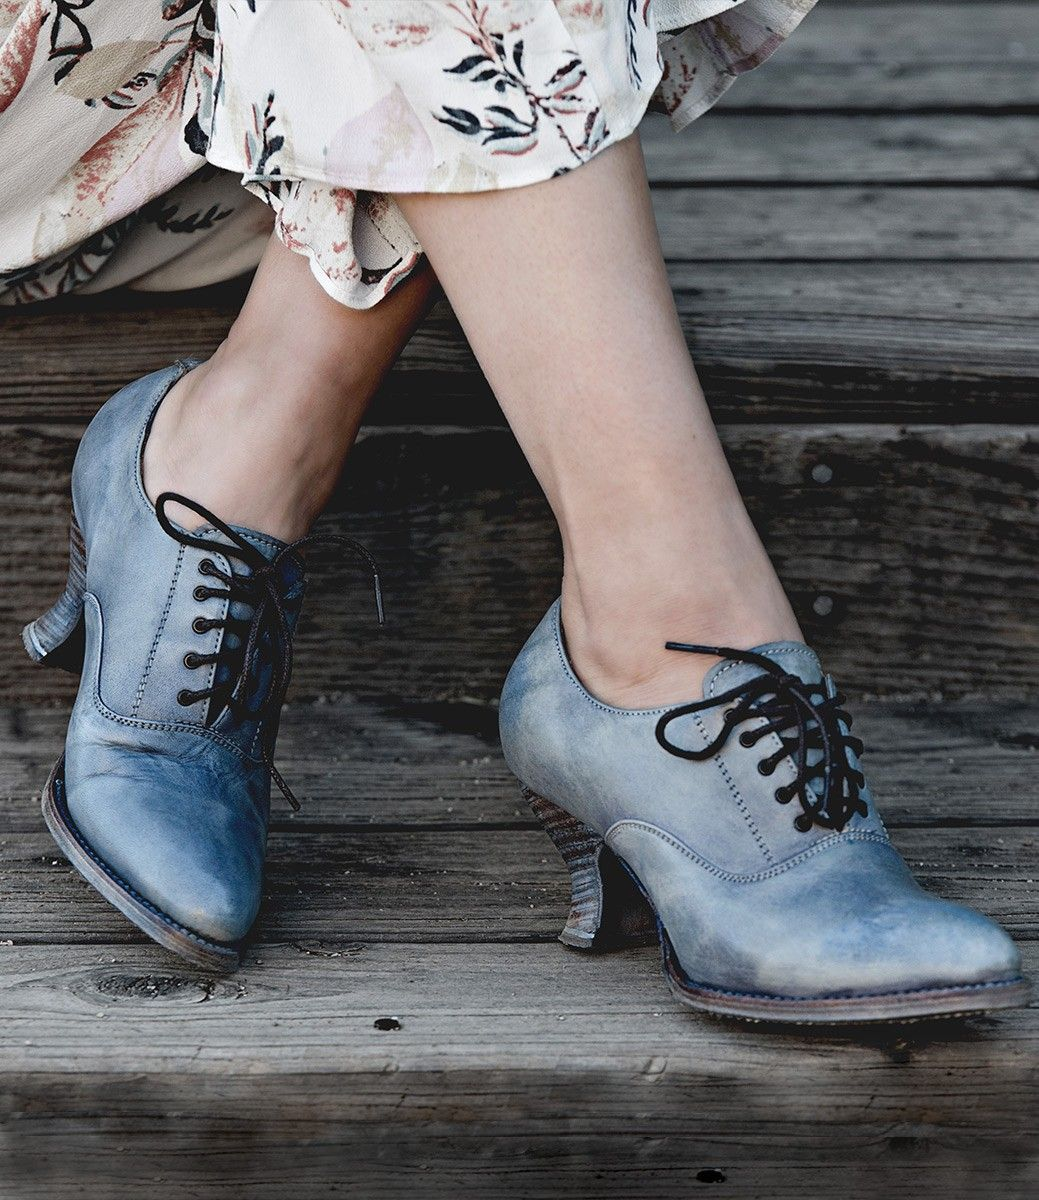 Victorian Style Leather Lace Up Shoes In Steel Blue Victorian Shoes Vintage Inspired Shoes Vintage Style Shoes